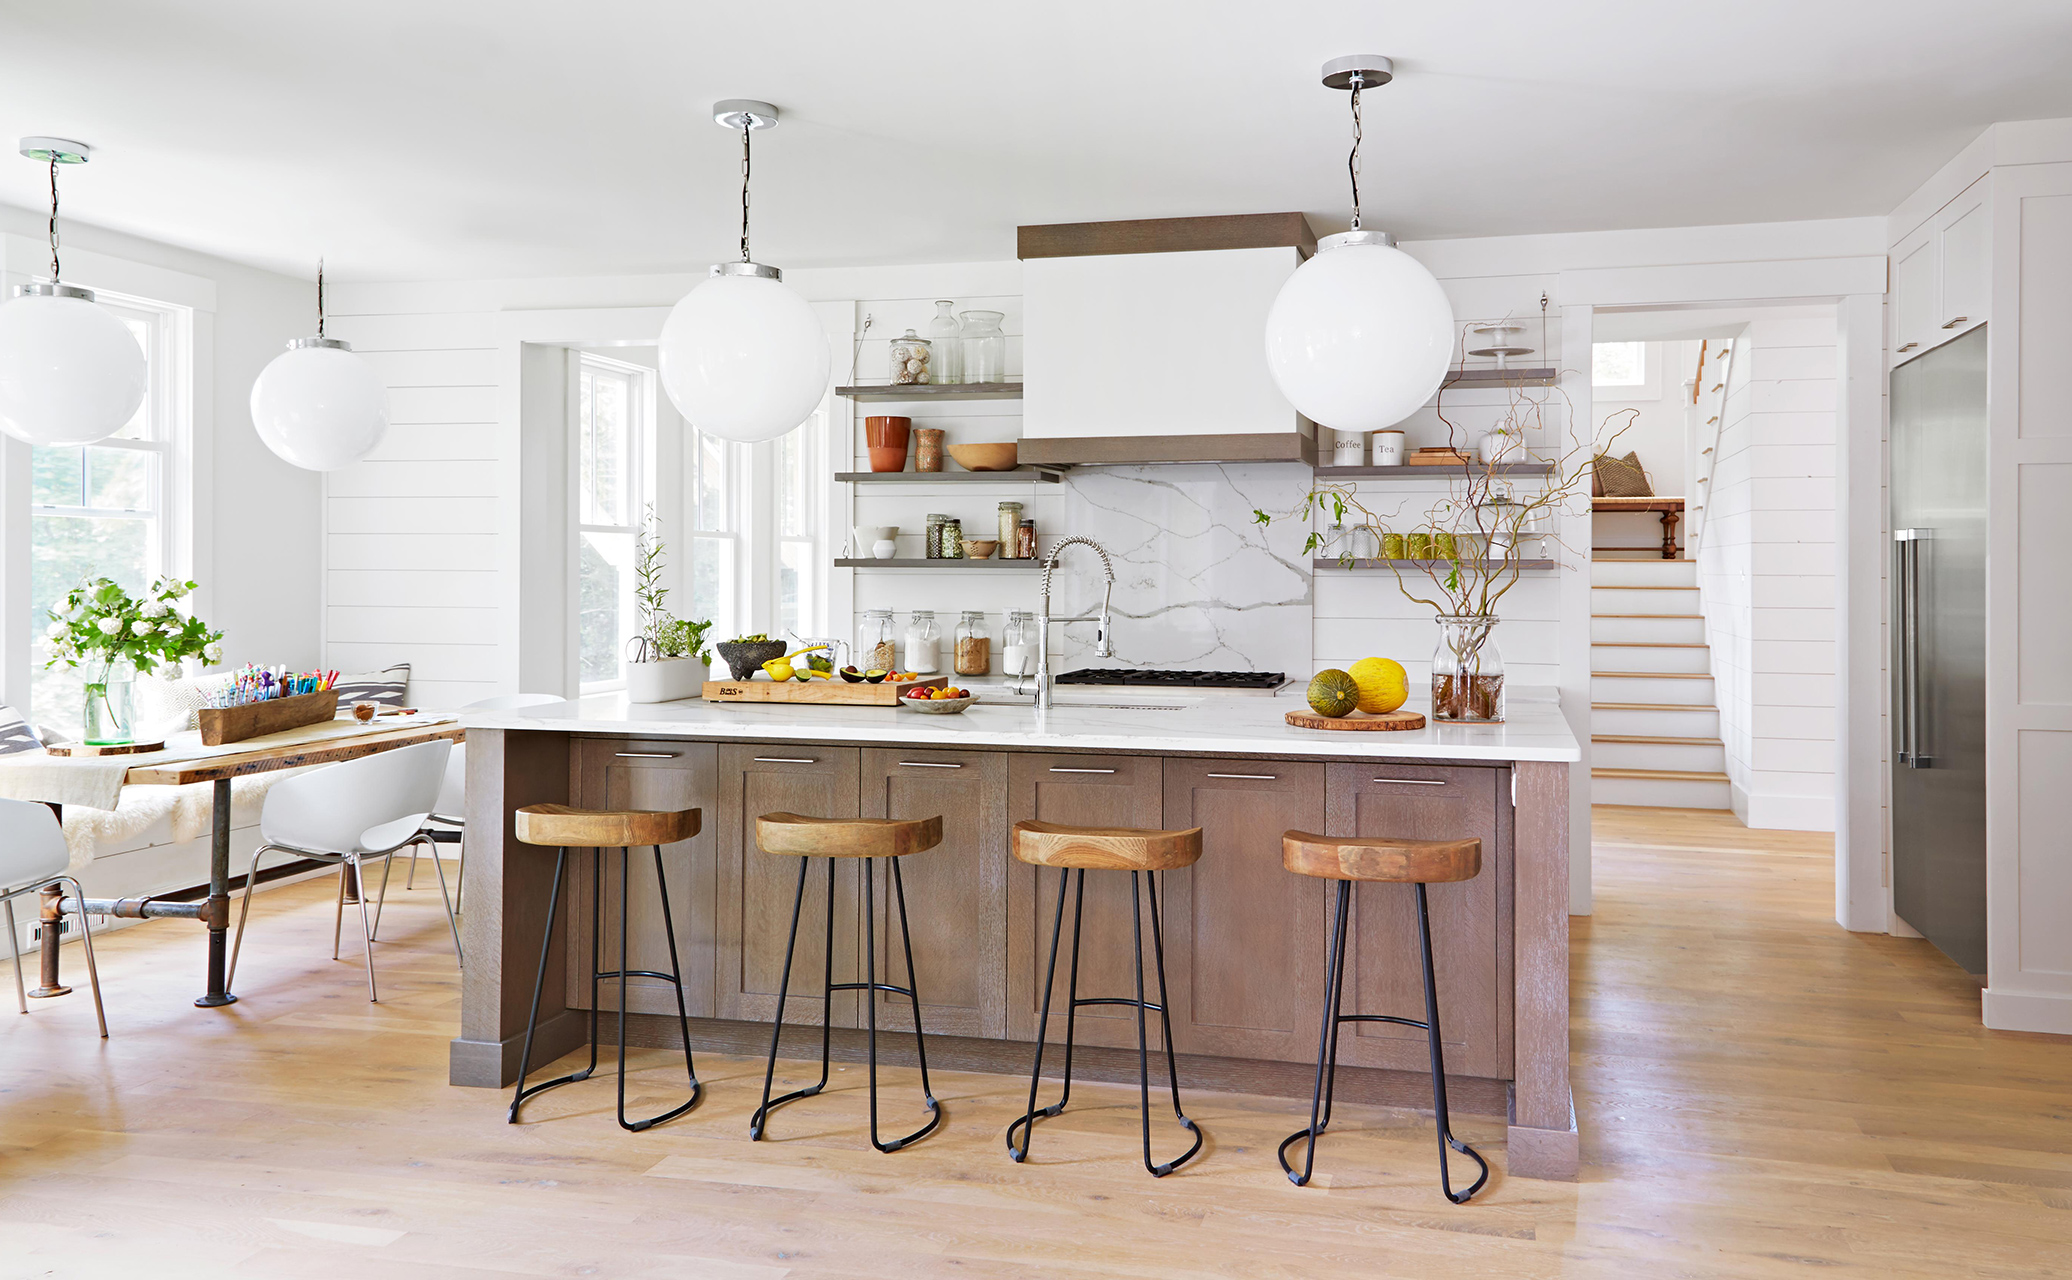 arcese modern farmhouse kitchen and dining area